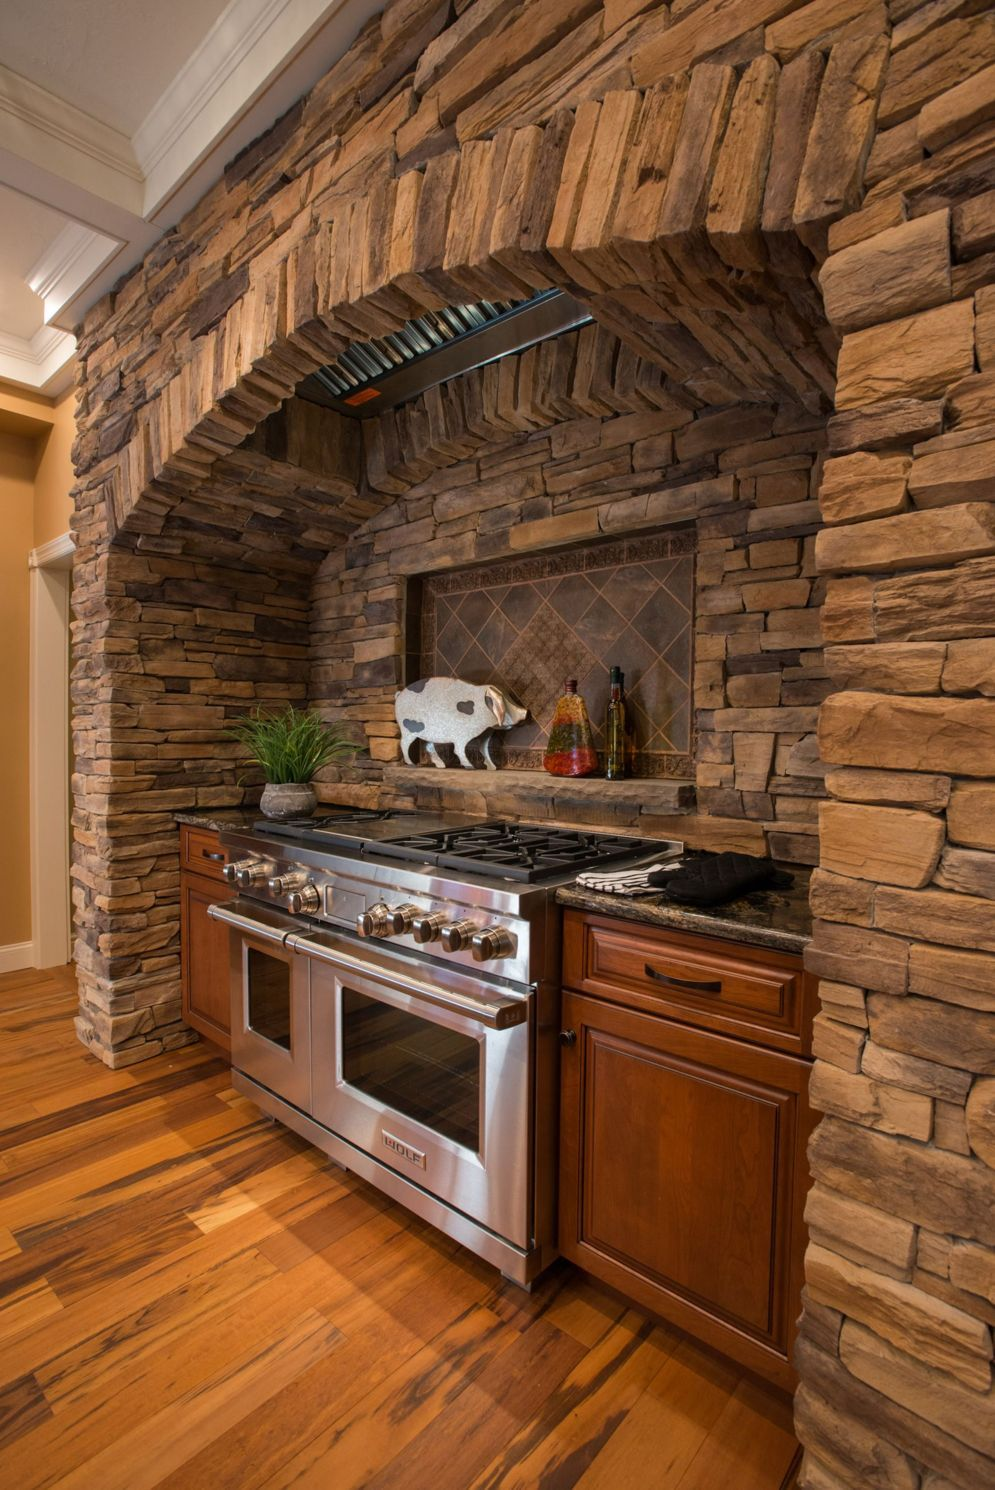 Photo of 40+ Kitchen Ideas Giving the Warm Cabin Designs in Amazing Rustic Concept   SHAIROOM.COM